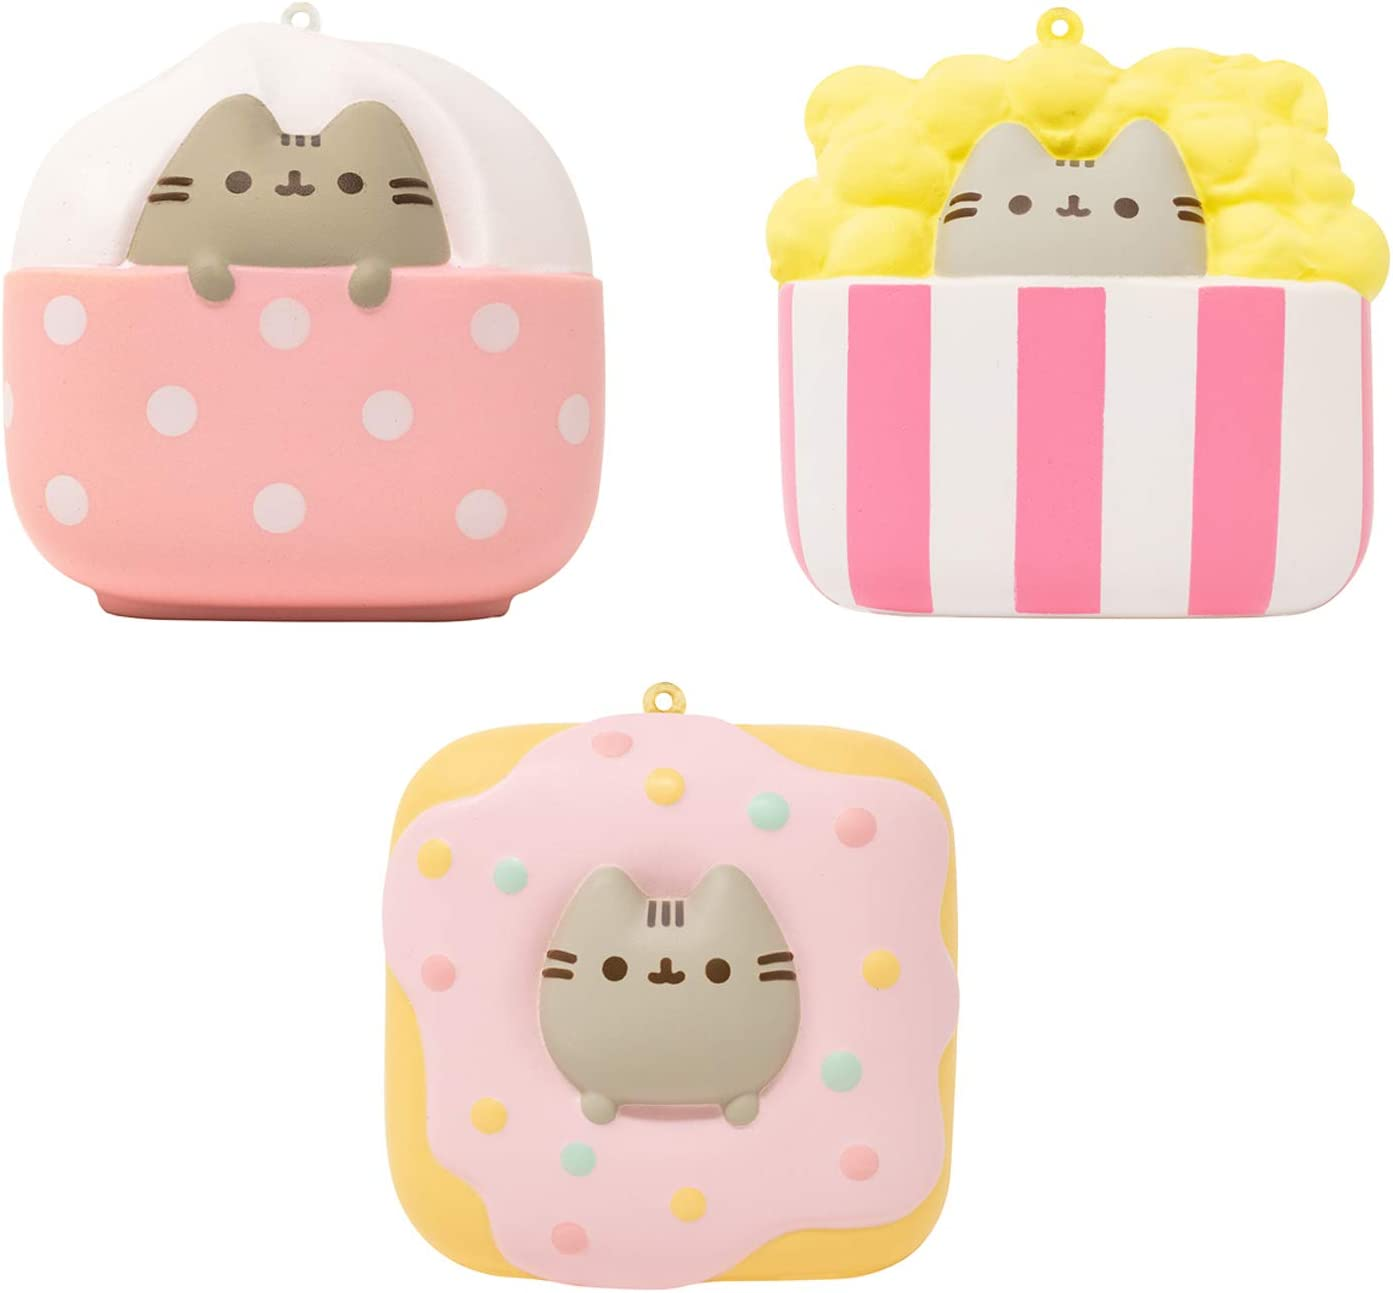 Hamee Pusheen Tabby Cat Junk Food Slow Rising Squishy Toy (Ice Cream & Popcorn & Donut, 3 Piece Set) for Birthday Gift Boxes, Party Favors, Stress Balls, Kawaii Squishies for Kids, Girls, Boys, Adults